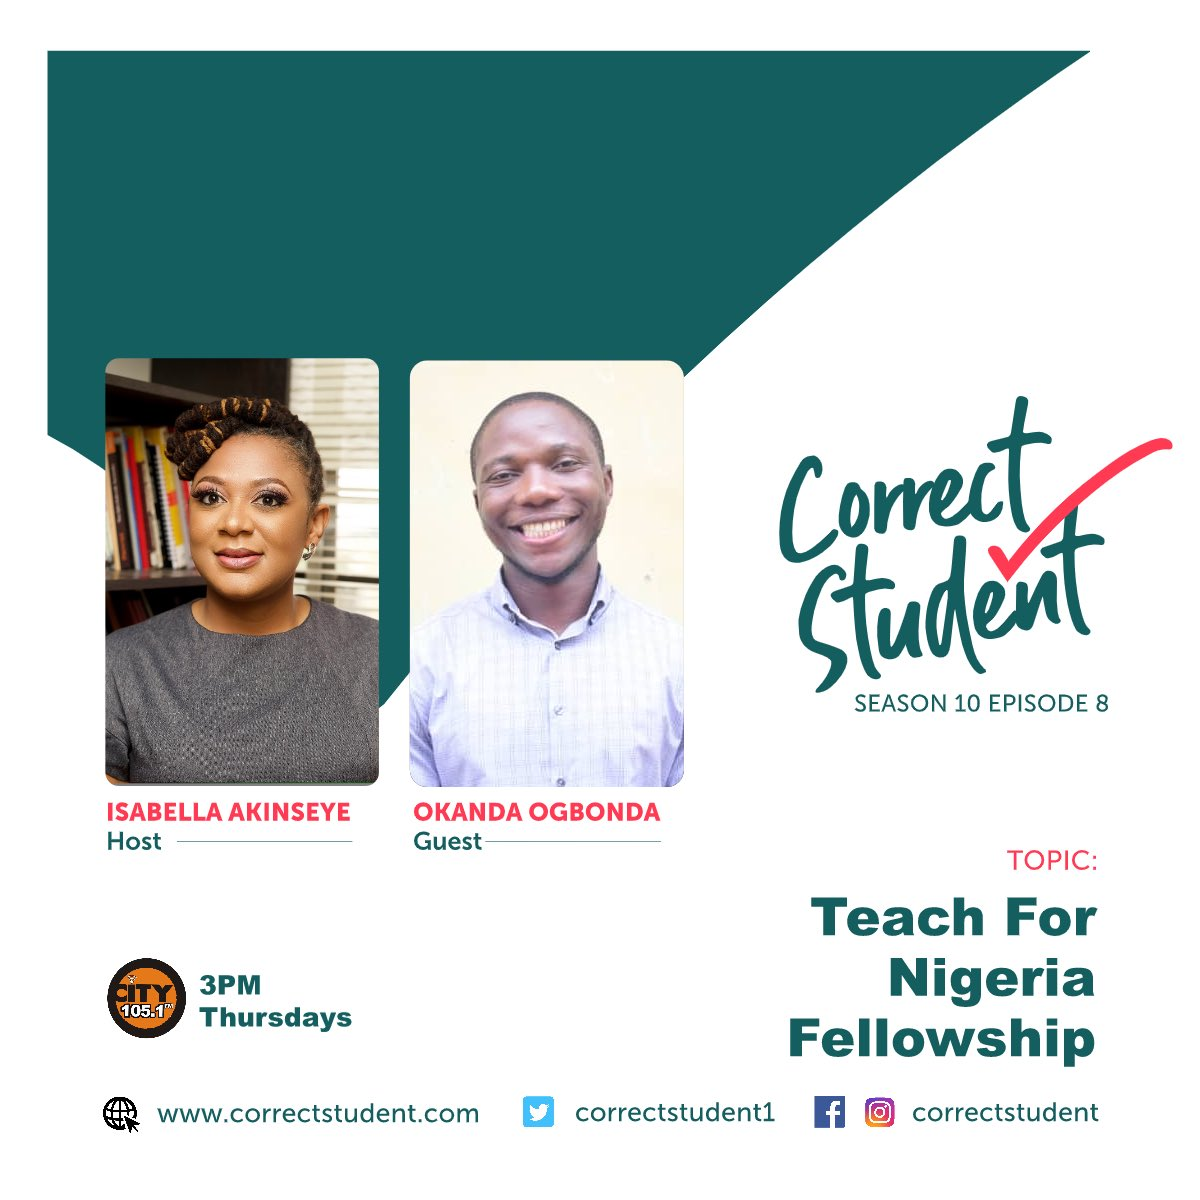 Isabella Akinseye @IAkinseye will be discussing the @Teach4Nigeria fellowship with a pioneer Fellow (2017 cohort), Okanda Ogbonda on today's episode of @correctstudent1. Tune in at 3 PM to @CITY1051 FM or listen online at  http:// city1051fm.com     #CorrectStudent #RadioShow <br>http://pic.twitter.com/toDob4Q5Yd